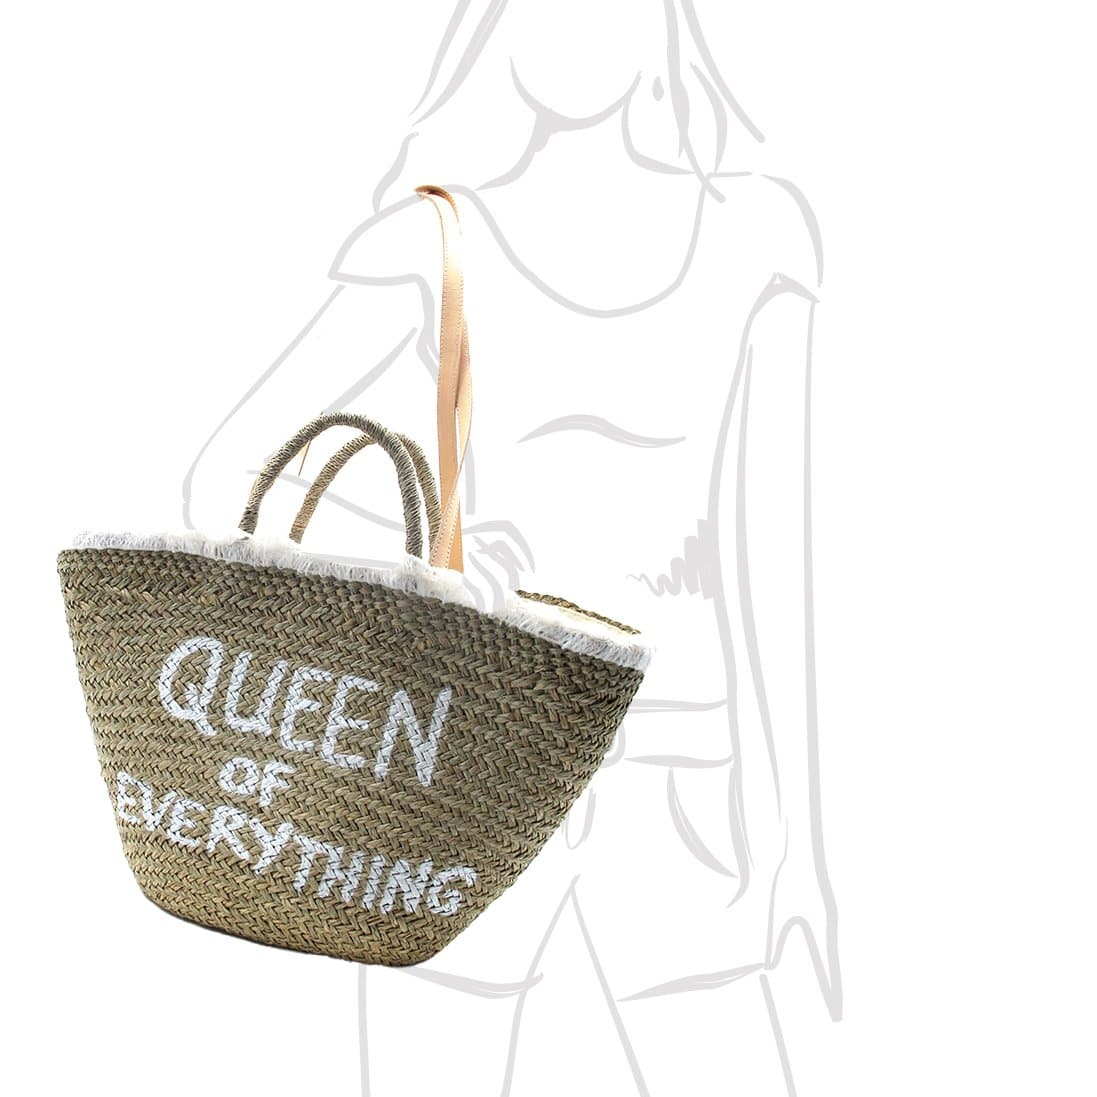 QUEEN OF EVERYTHING BAG - Bali-Bali